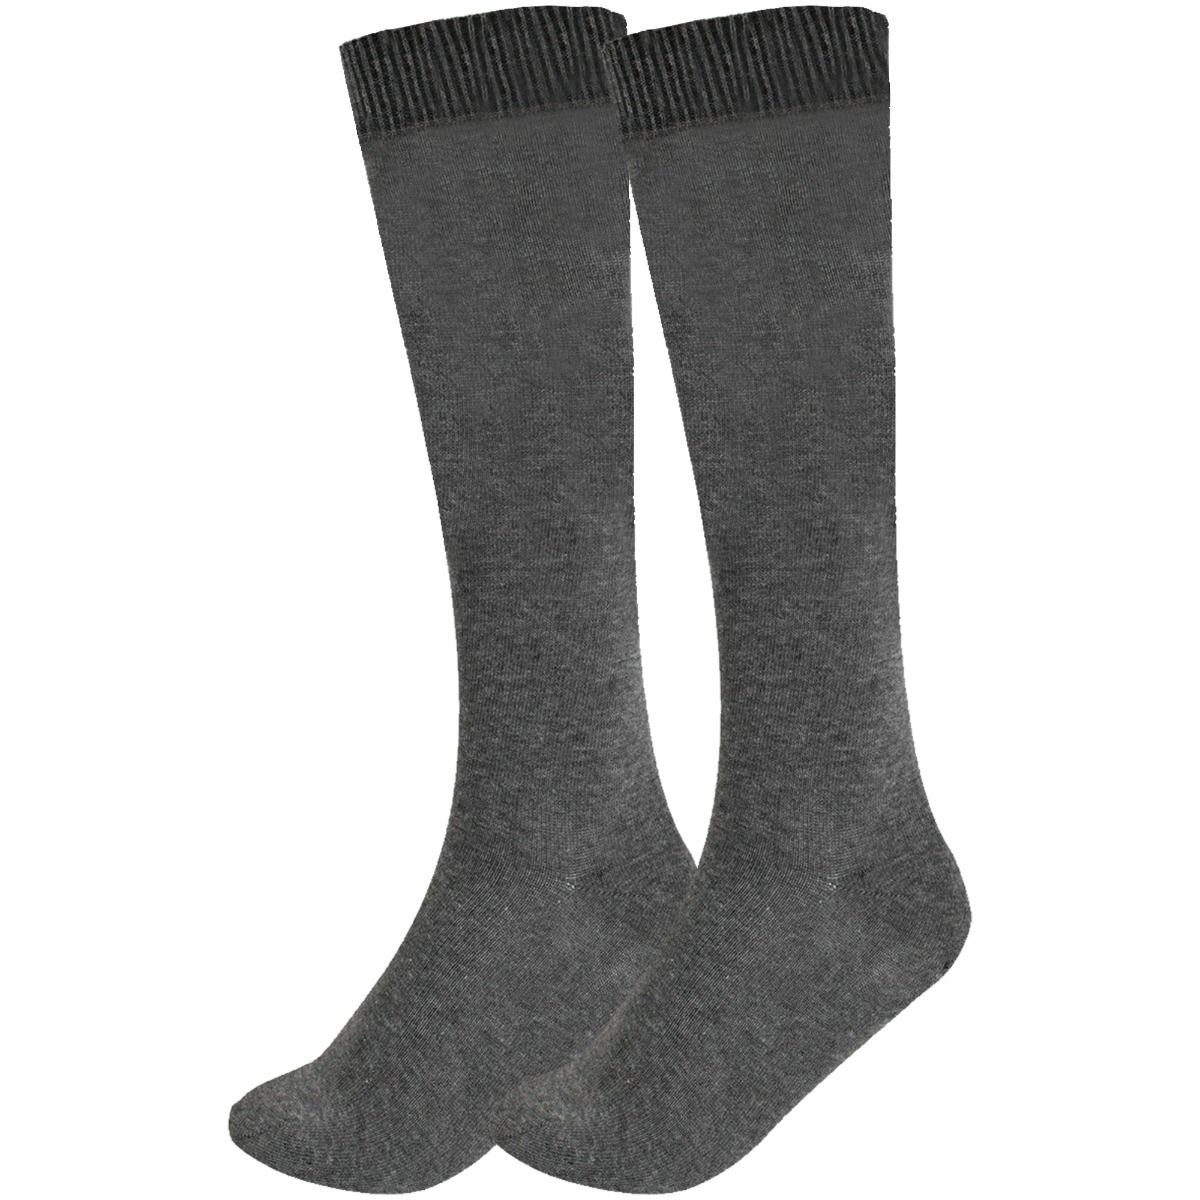 Accessories | Girls Knee High Plain School Socks with Satin 1, 3 & 6 Packs, From £3.49, Guest Brand, in  | Raw Denim Outlet